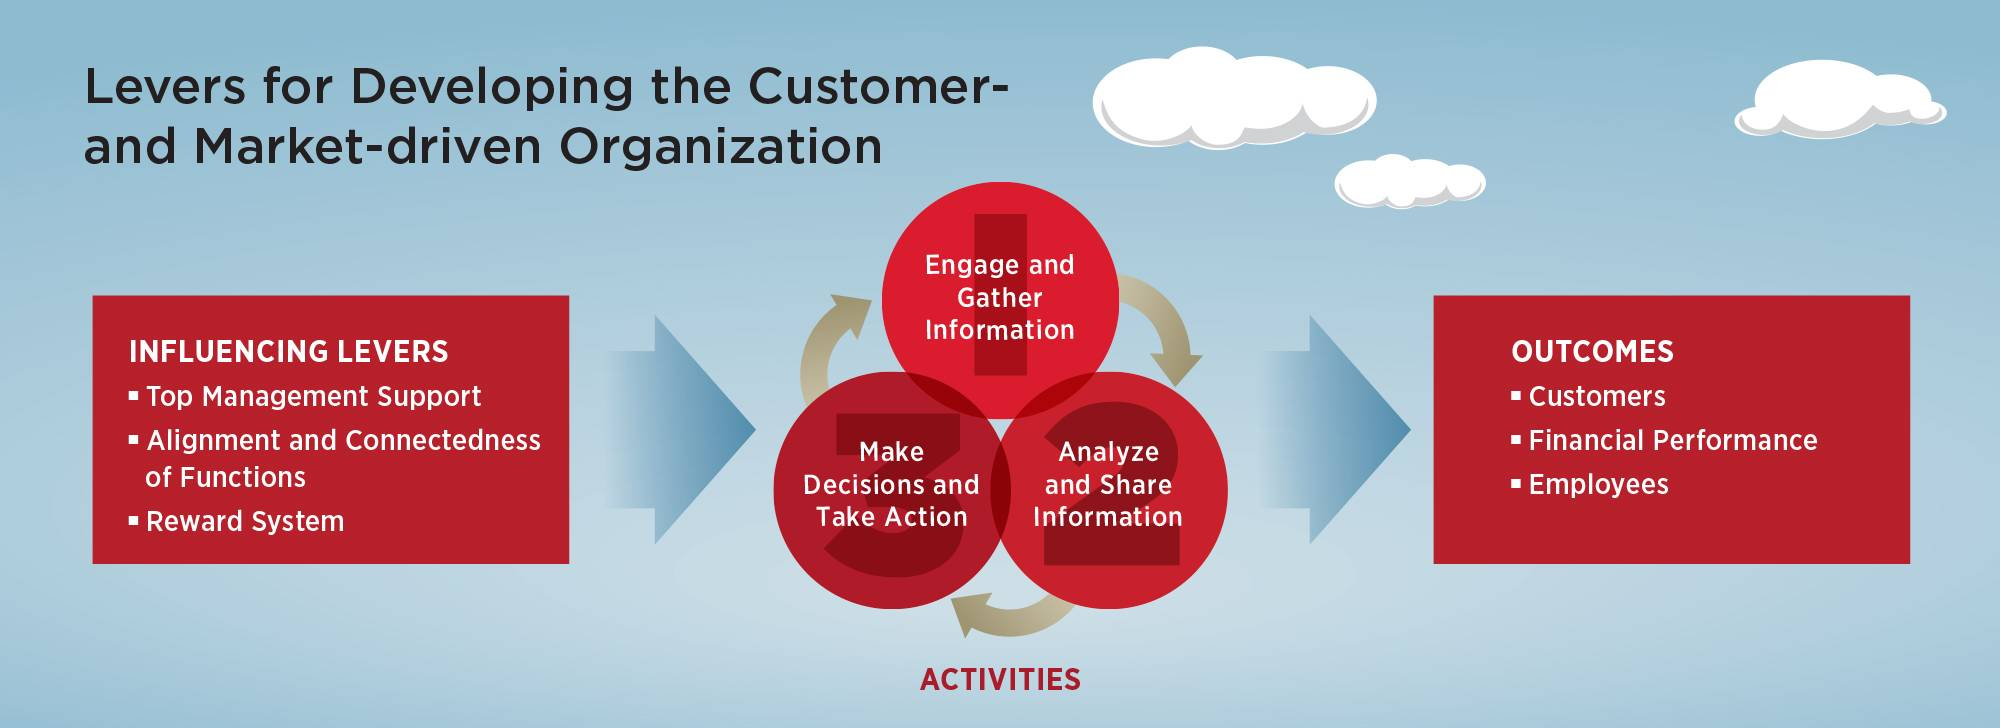 Levers for developing the customer- and market-driven organization